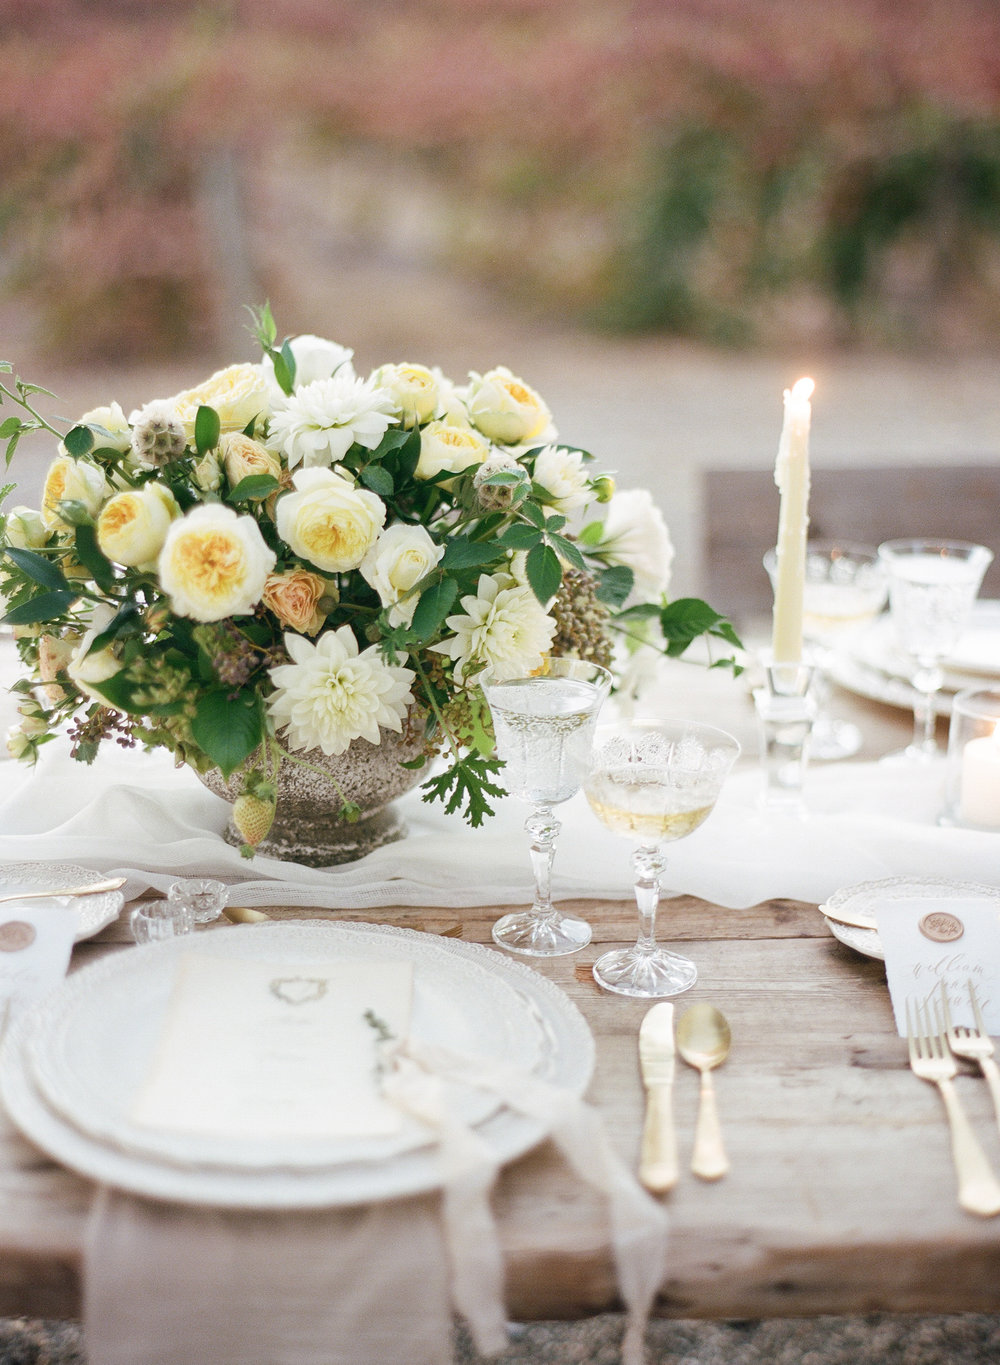 Hammersky Styled Shoot  FEATURED -  Fluttermag   Photography -  Molly Carr Photography